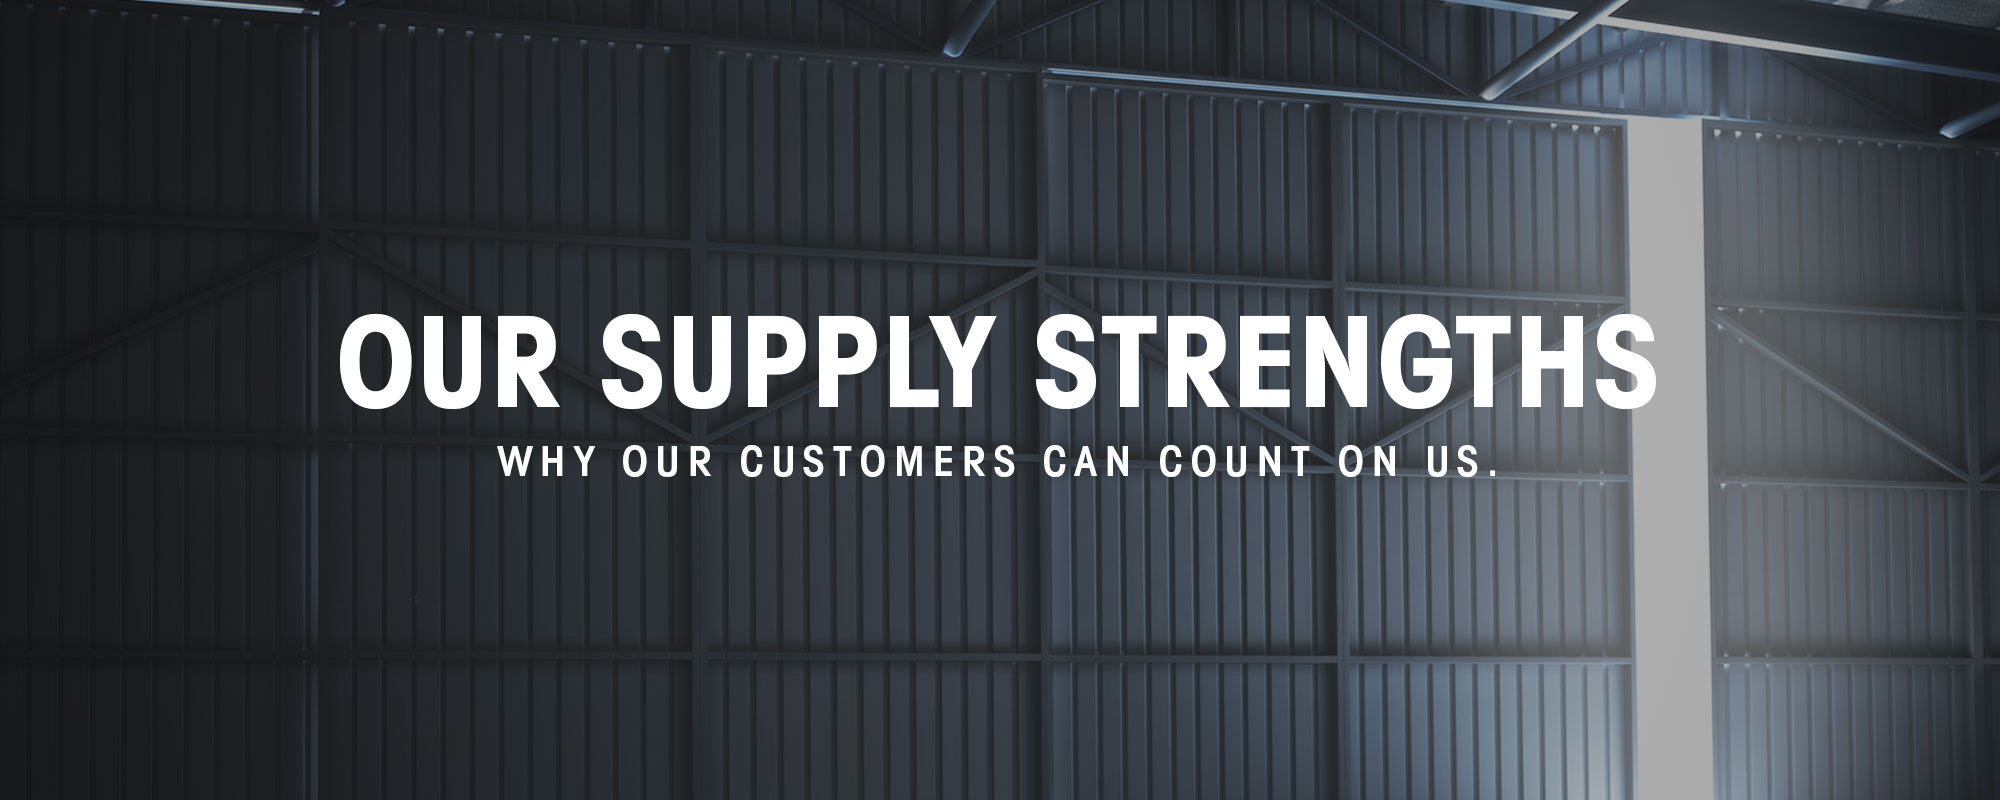 Our Supply Strengths, why our customers can count on us